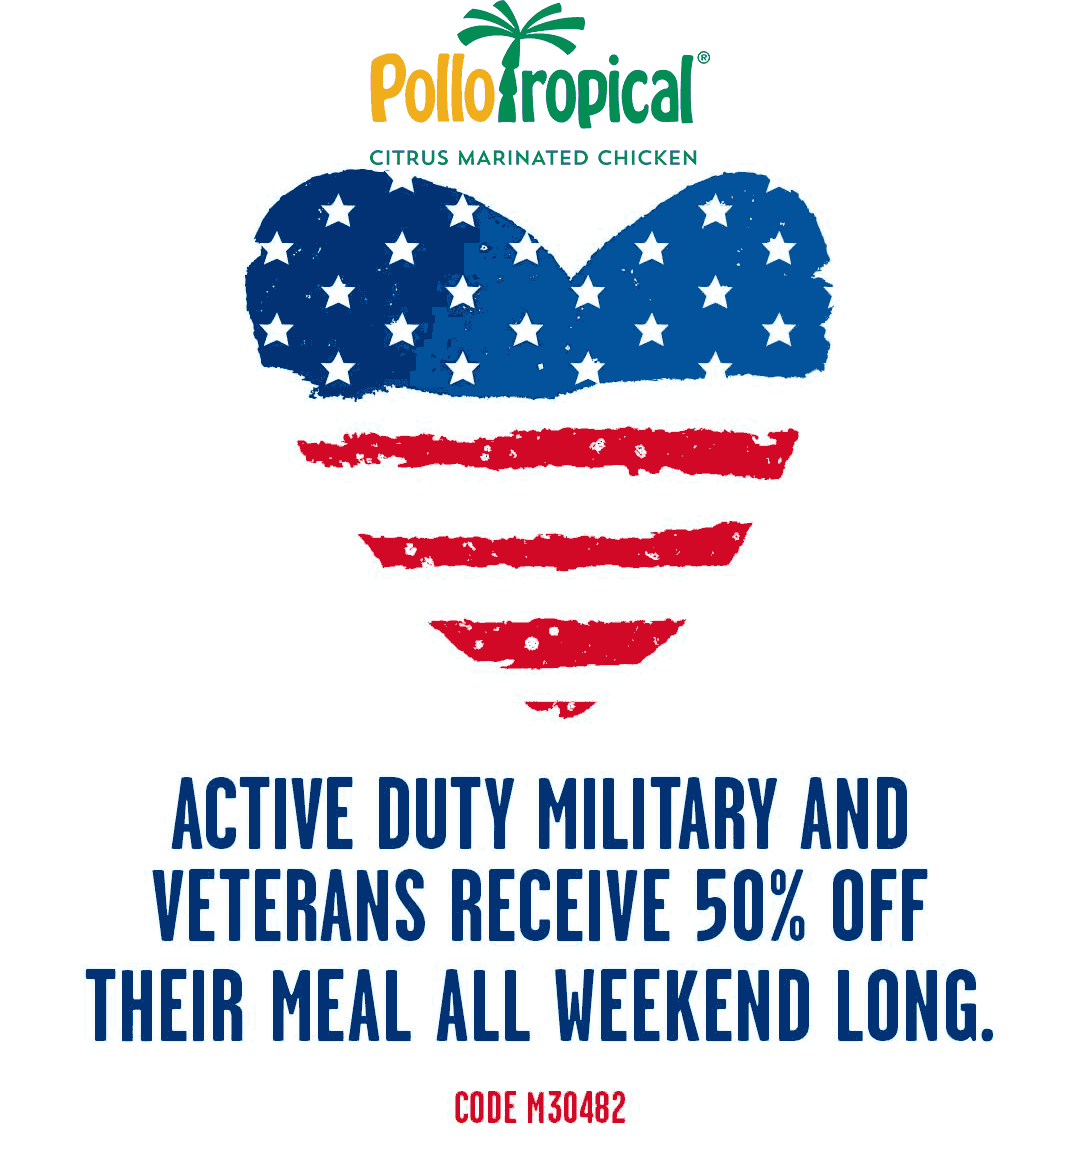 Pollo Tropical Coupon February 2020 Military enjoy 50% off at Pollo Tropical restaurants